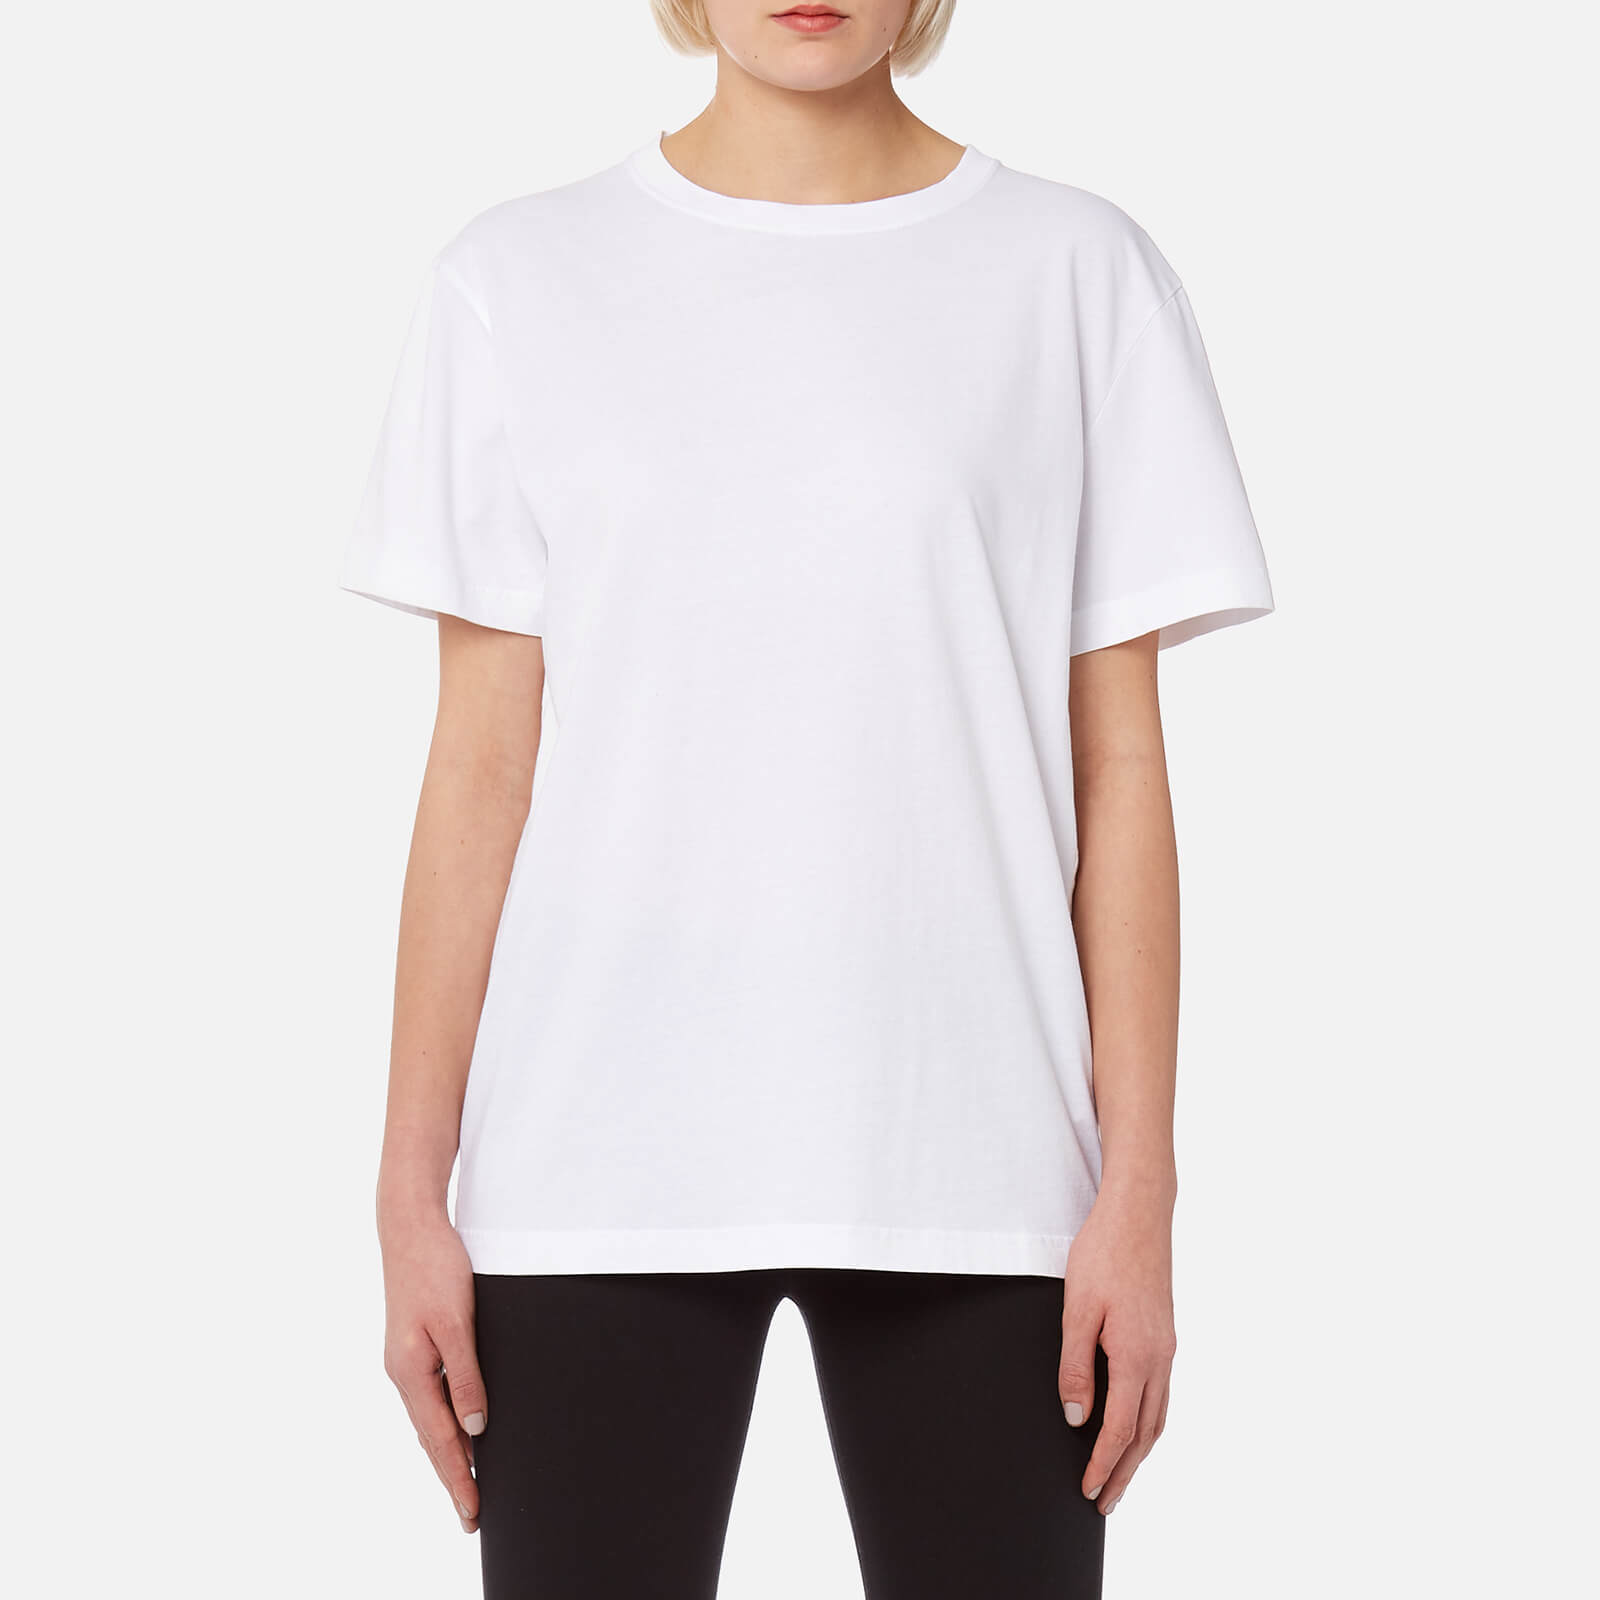 bfc8a7f47 Helmut Lang Women's Ring Detail T-Shirt - White - Free UK Delivery over £50